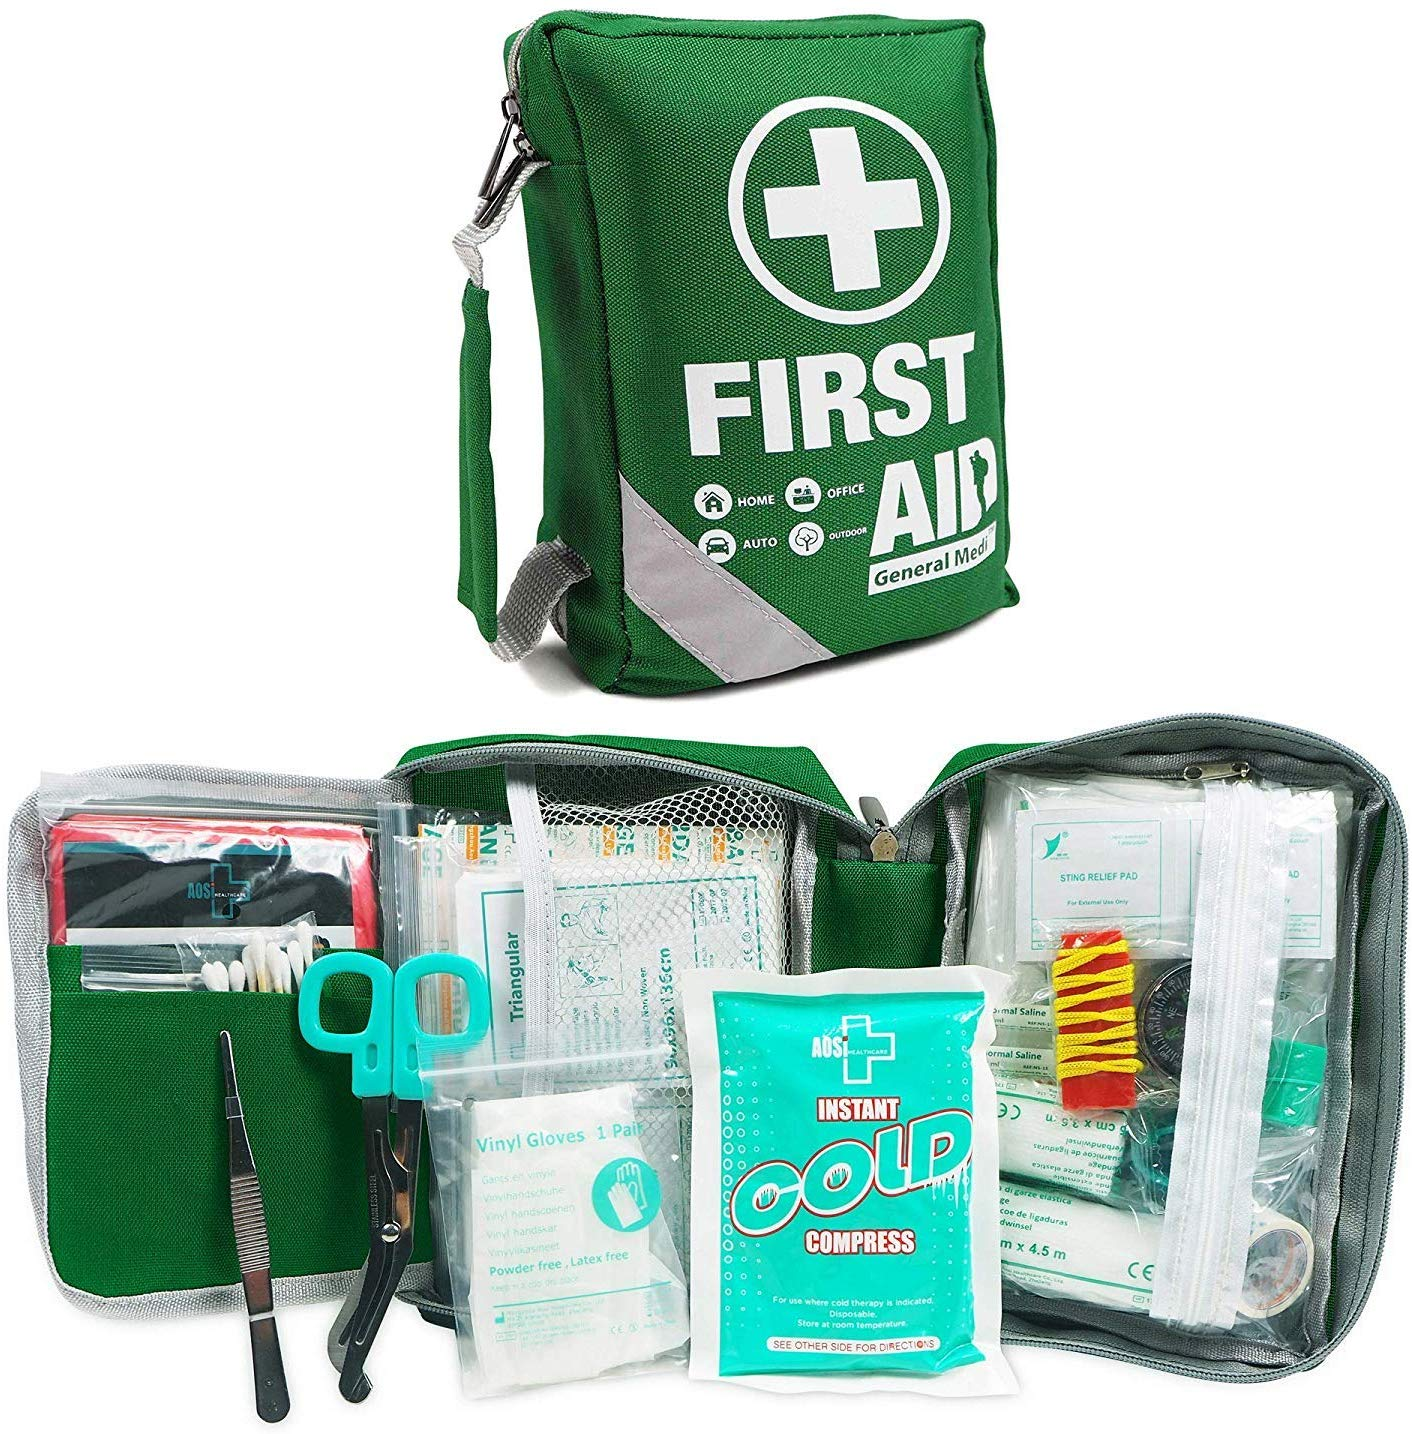 First Aid Kit -Compact First Aid Bag(175 Piece)